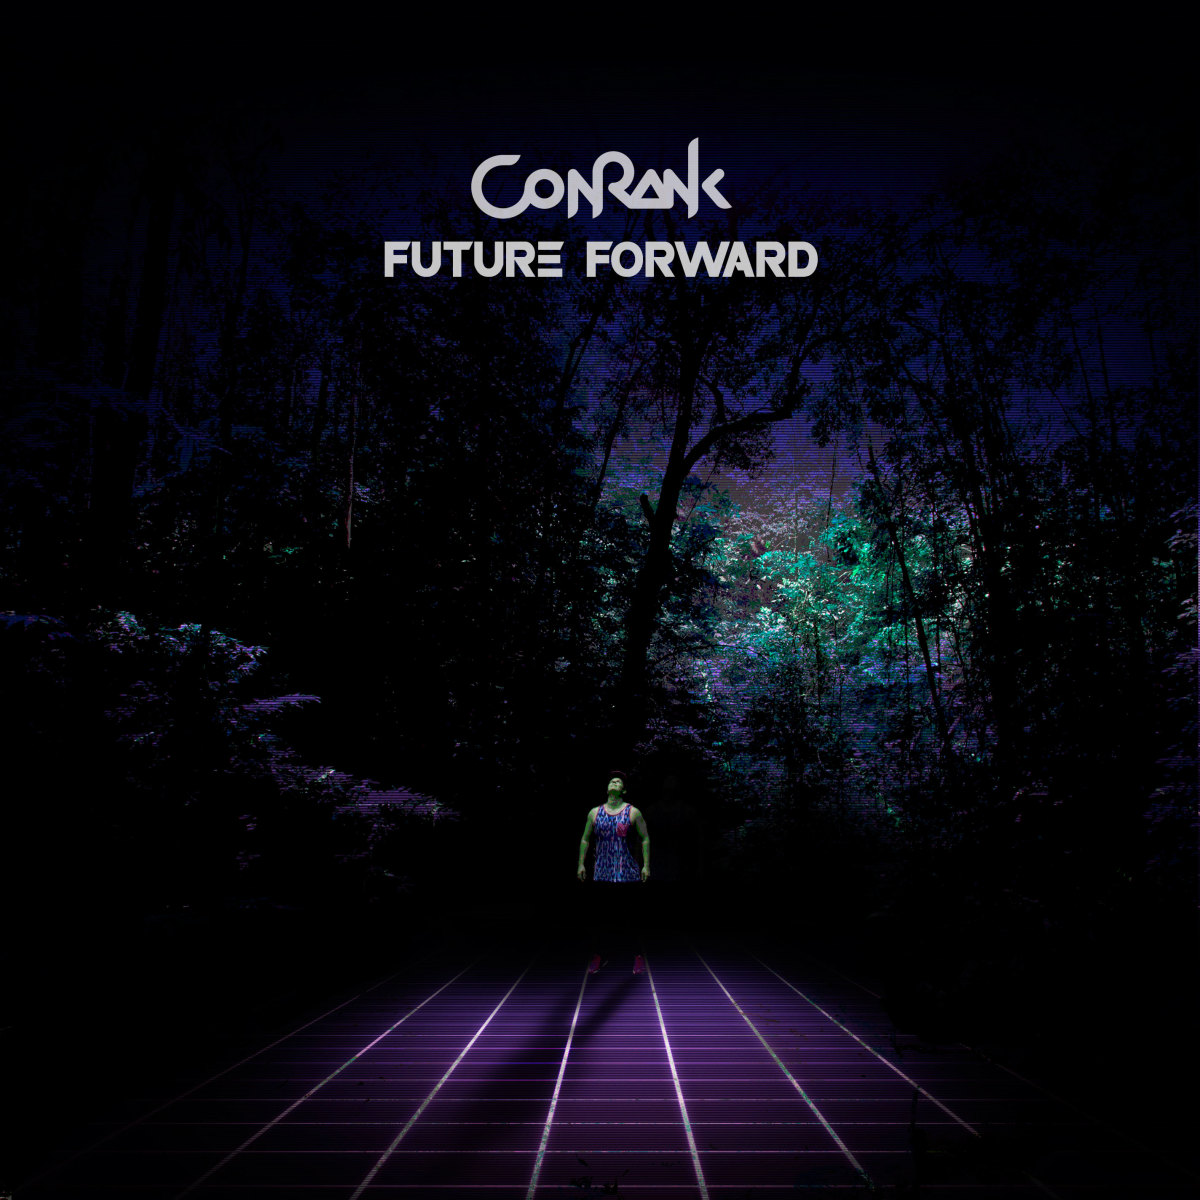 Conrank_FutureForward (2)